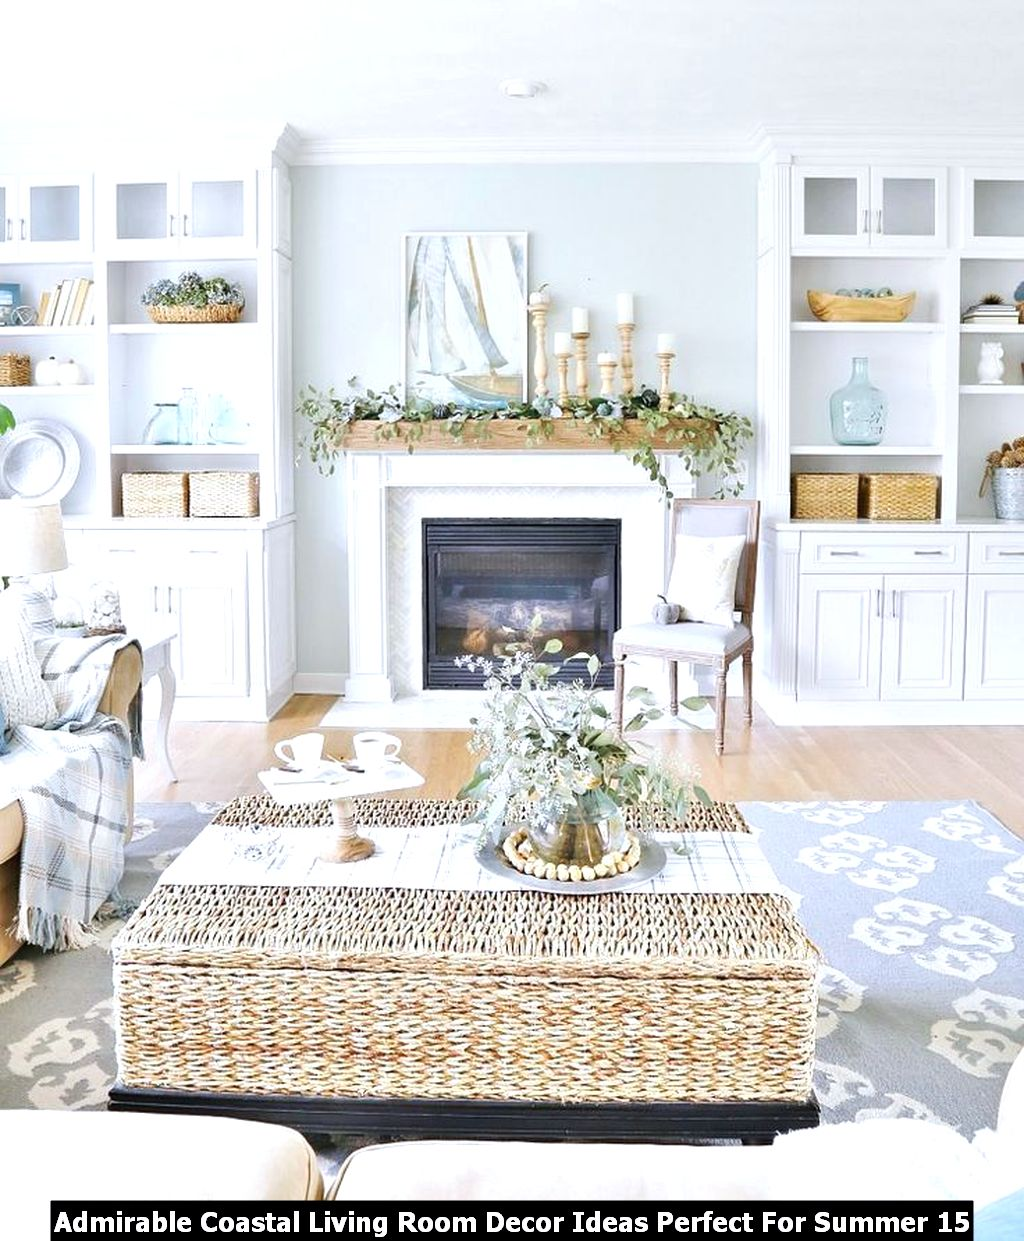 Admirable Coastal Living Room Decor Ideas Perfect For Summer 15